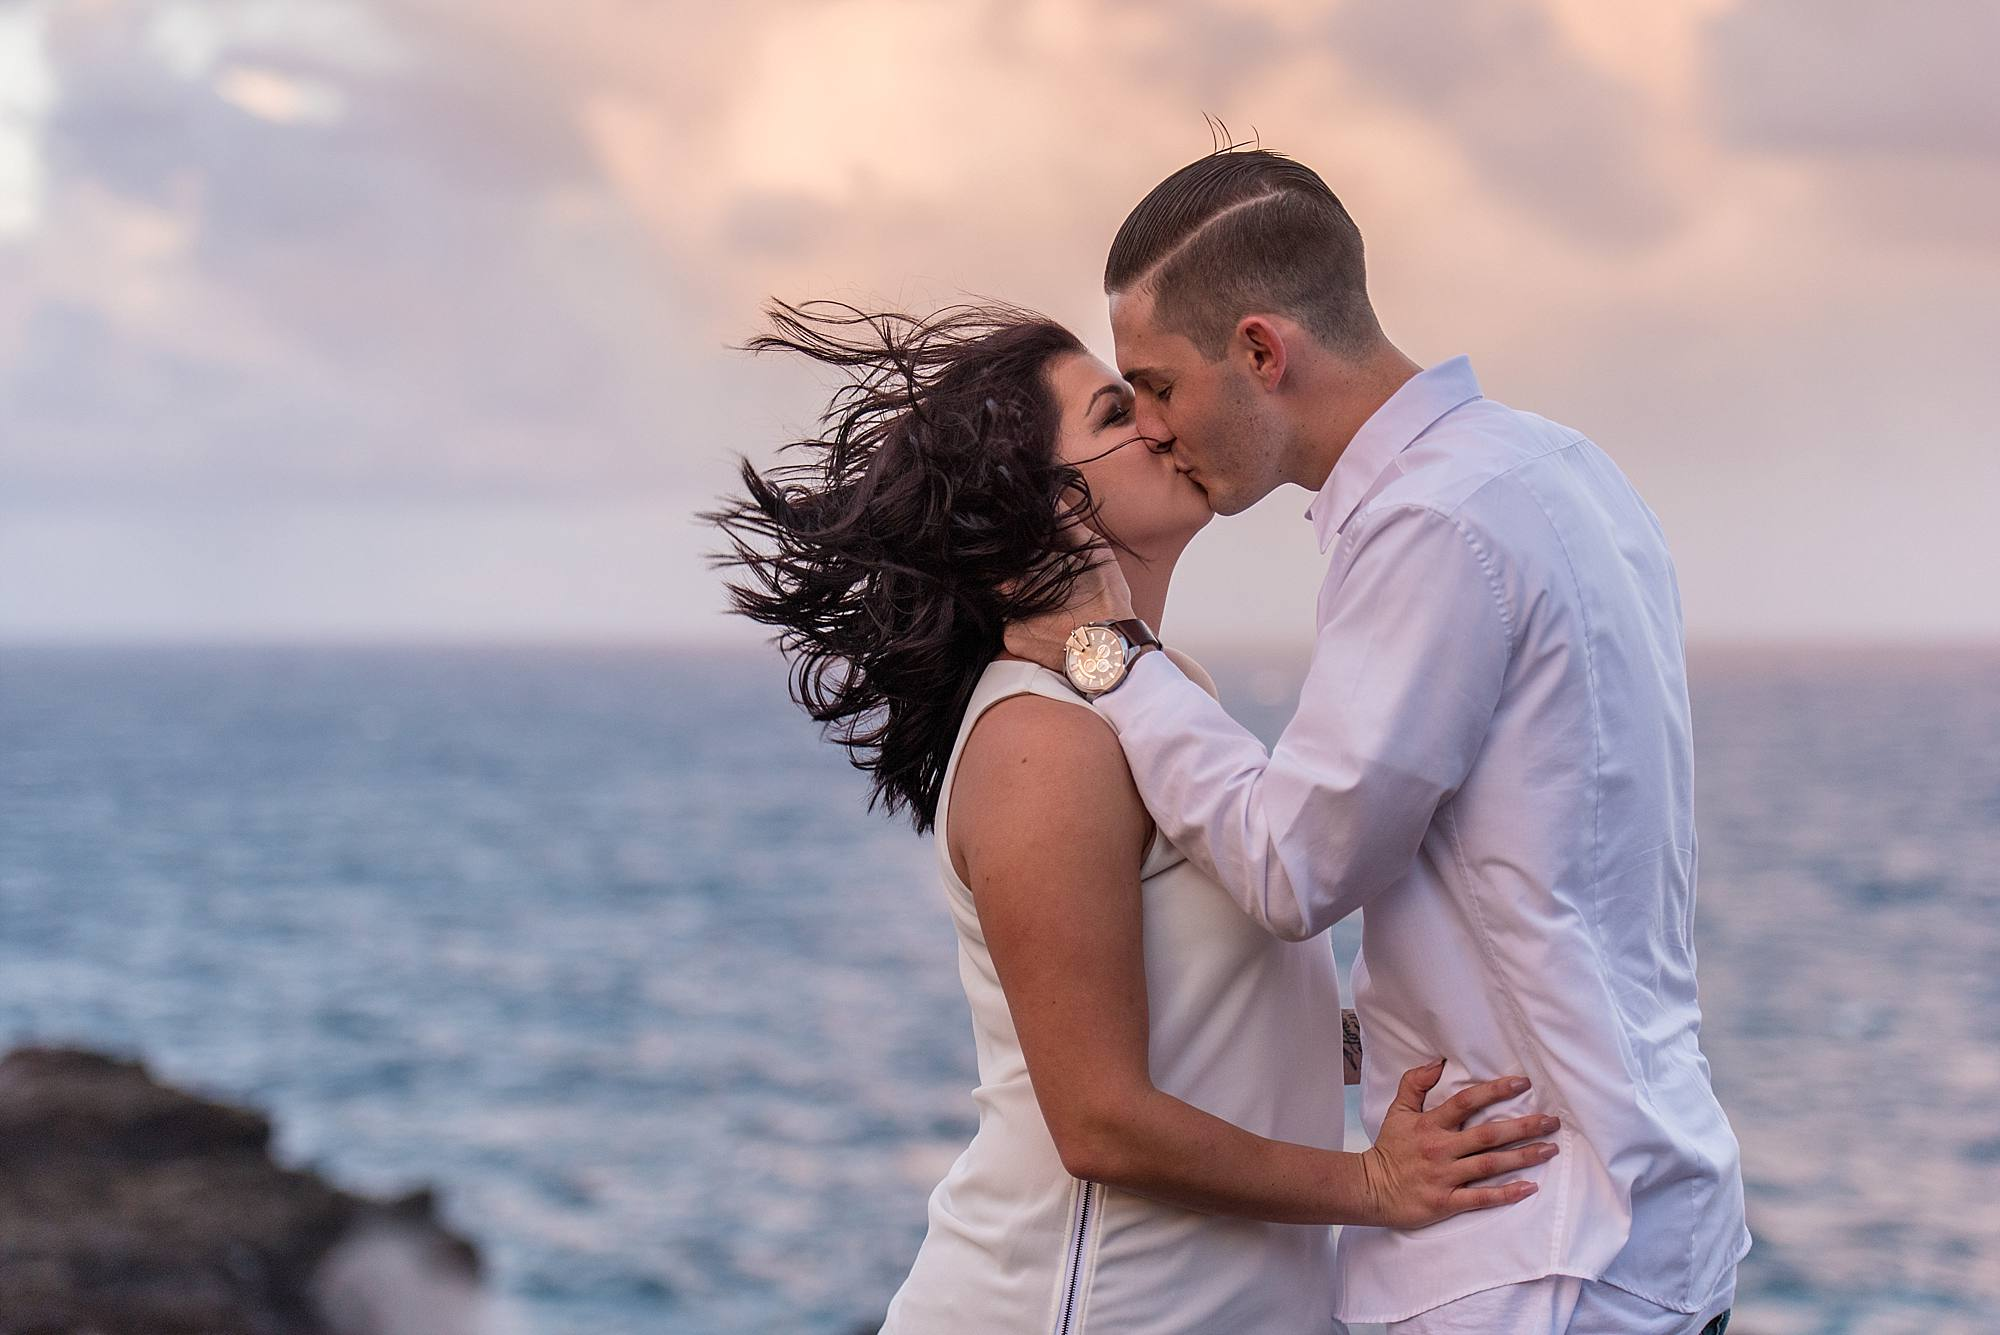 maui-sunset-proposal-at-blowhole-hawaii-proposal_0023